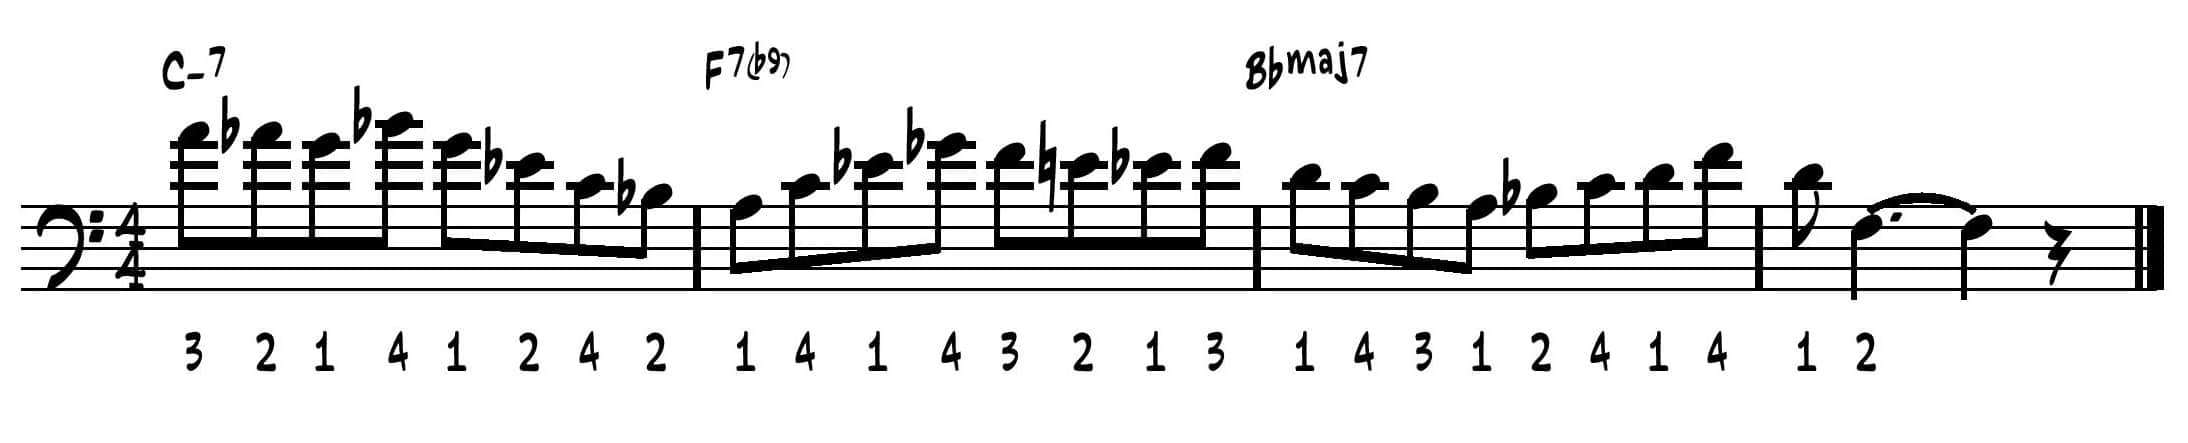 spice-up-your-lines-full-score-page-001